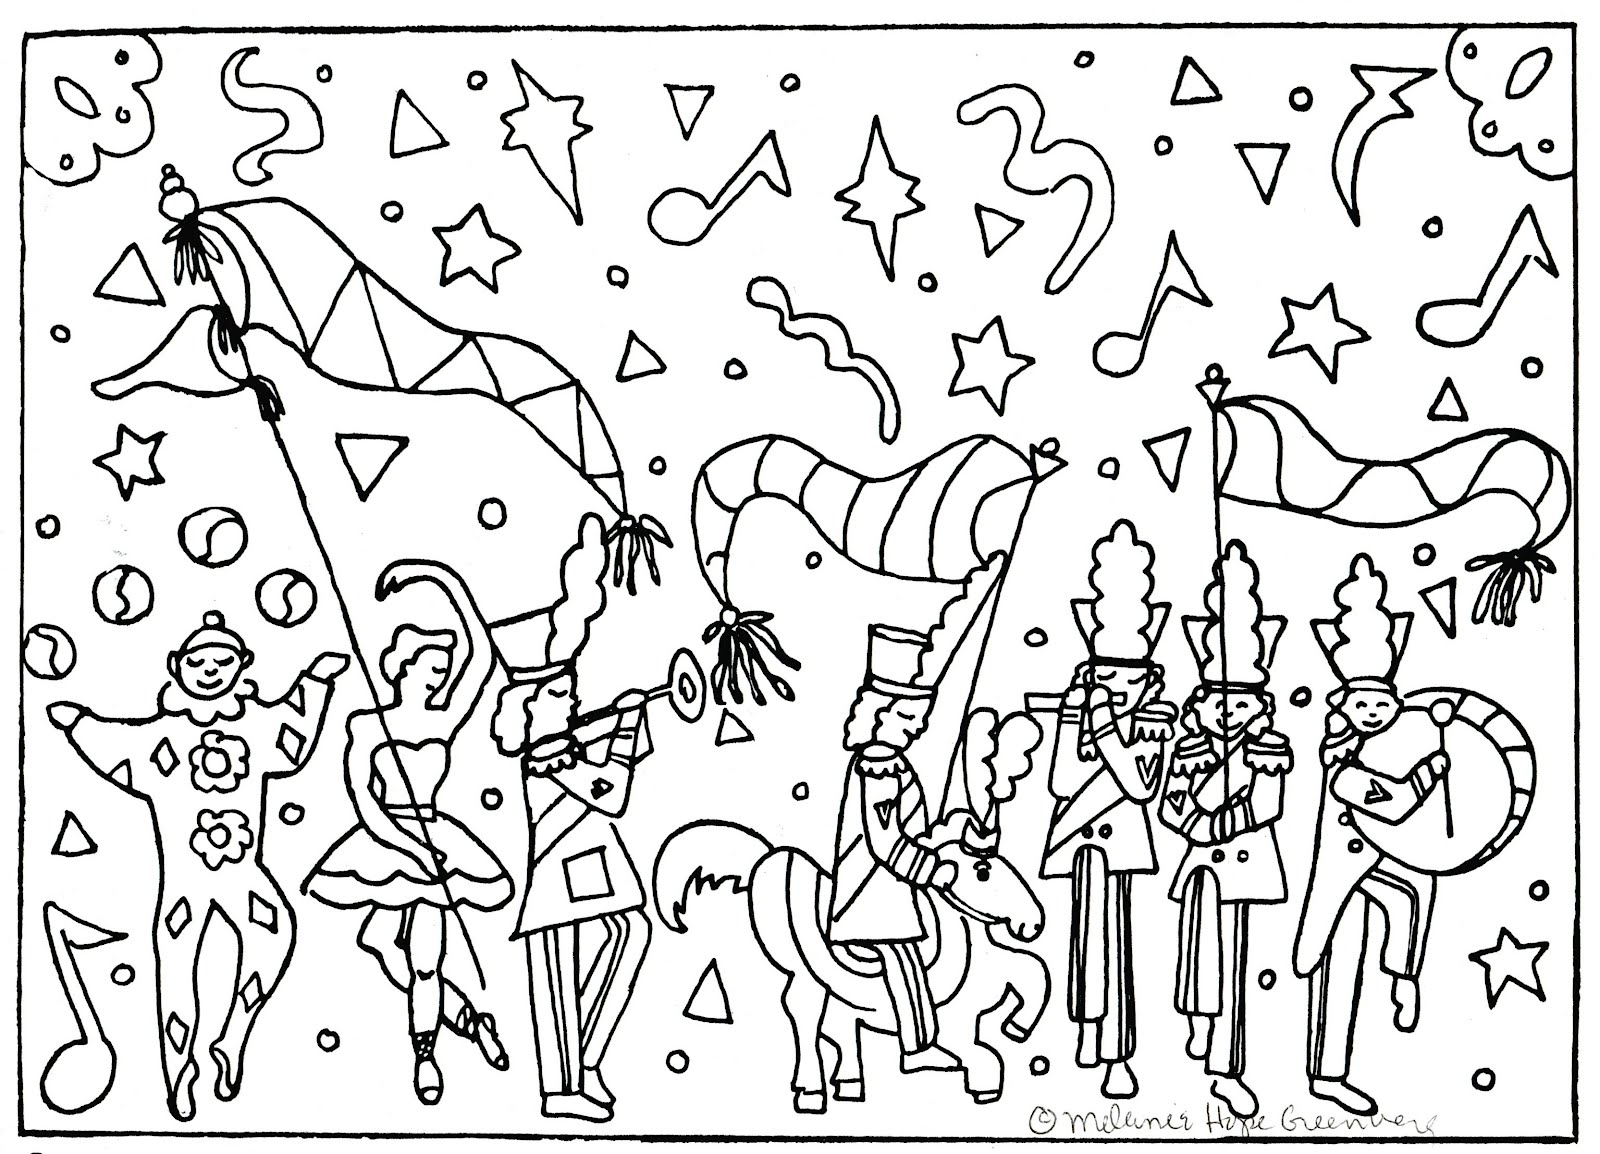 Parade coloring pages to print for adults - In Honor Of Spring I Am Offering Free Coloring Pages Click On Each Image To Enlarge Print Color